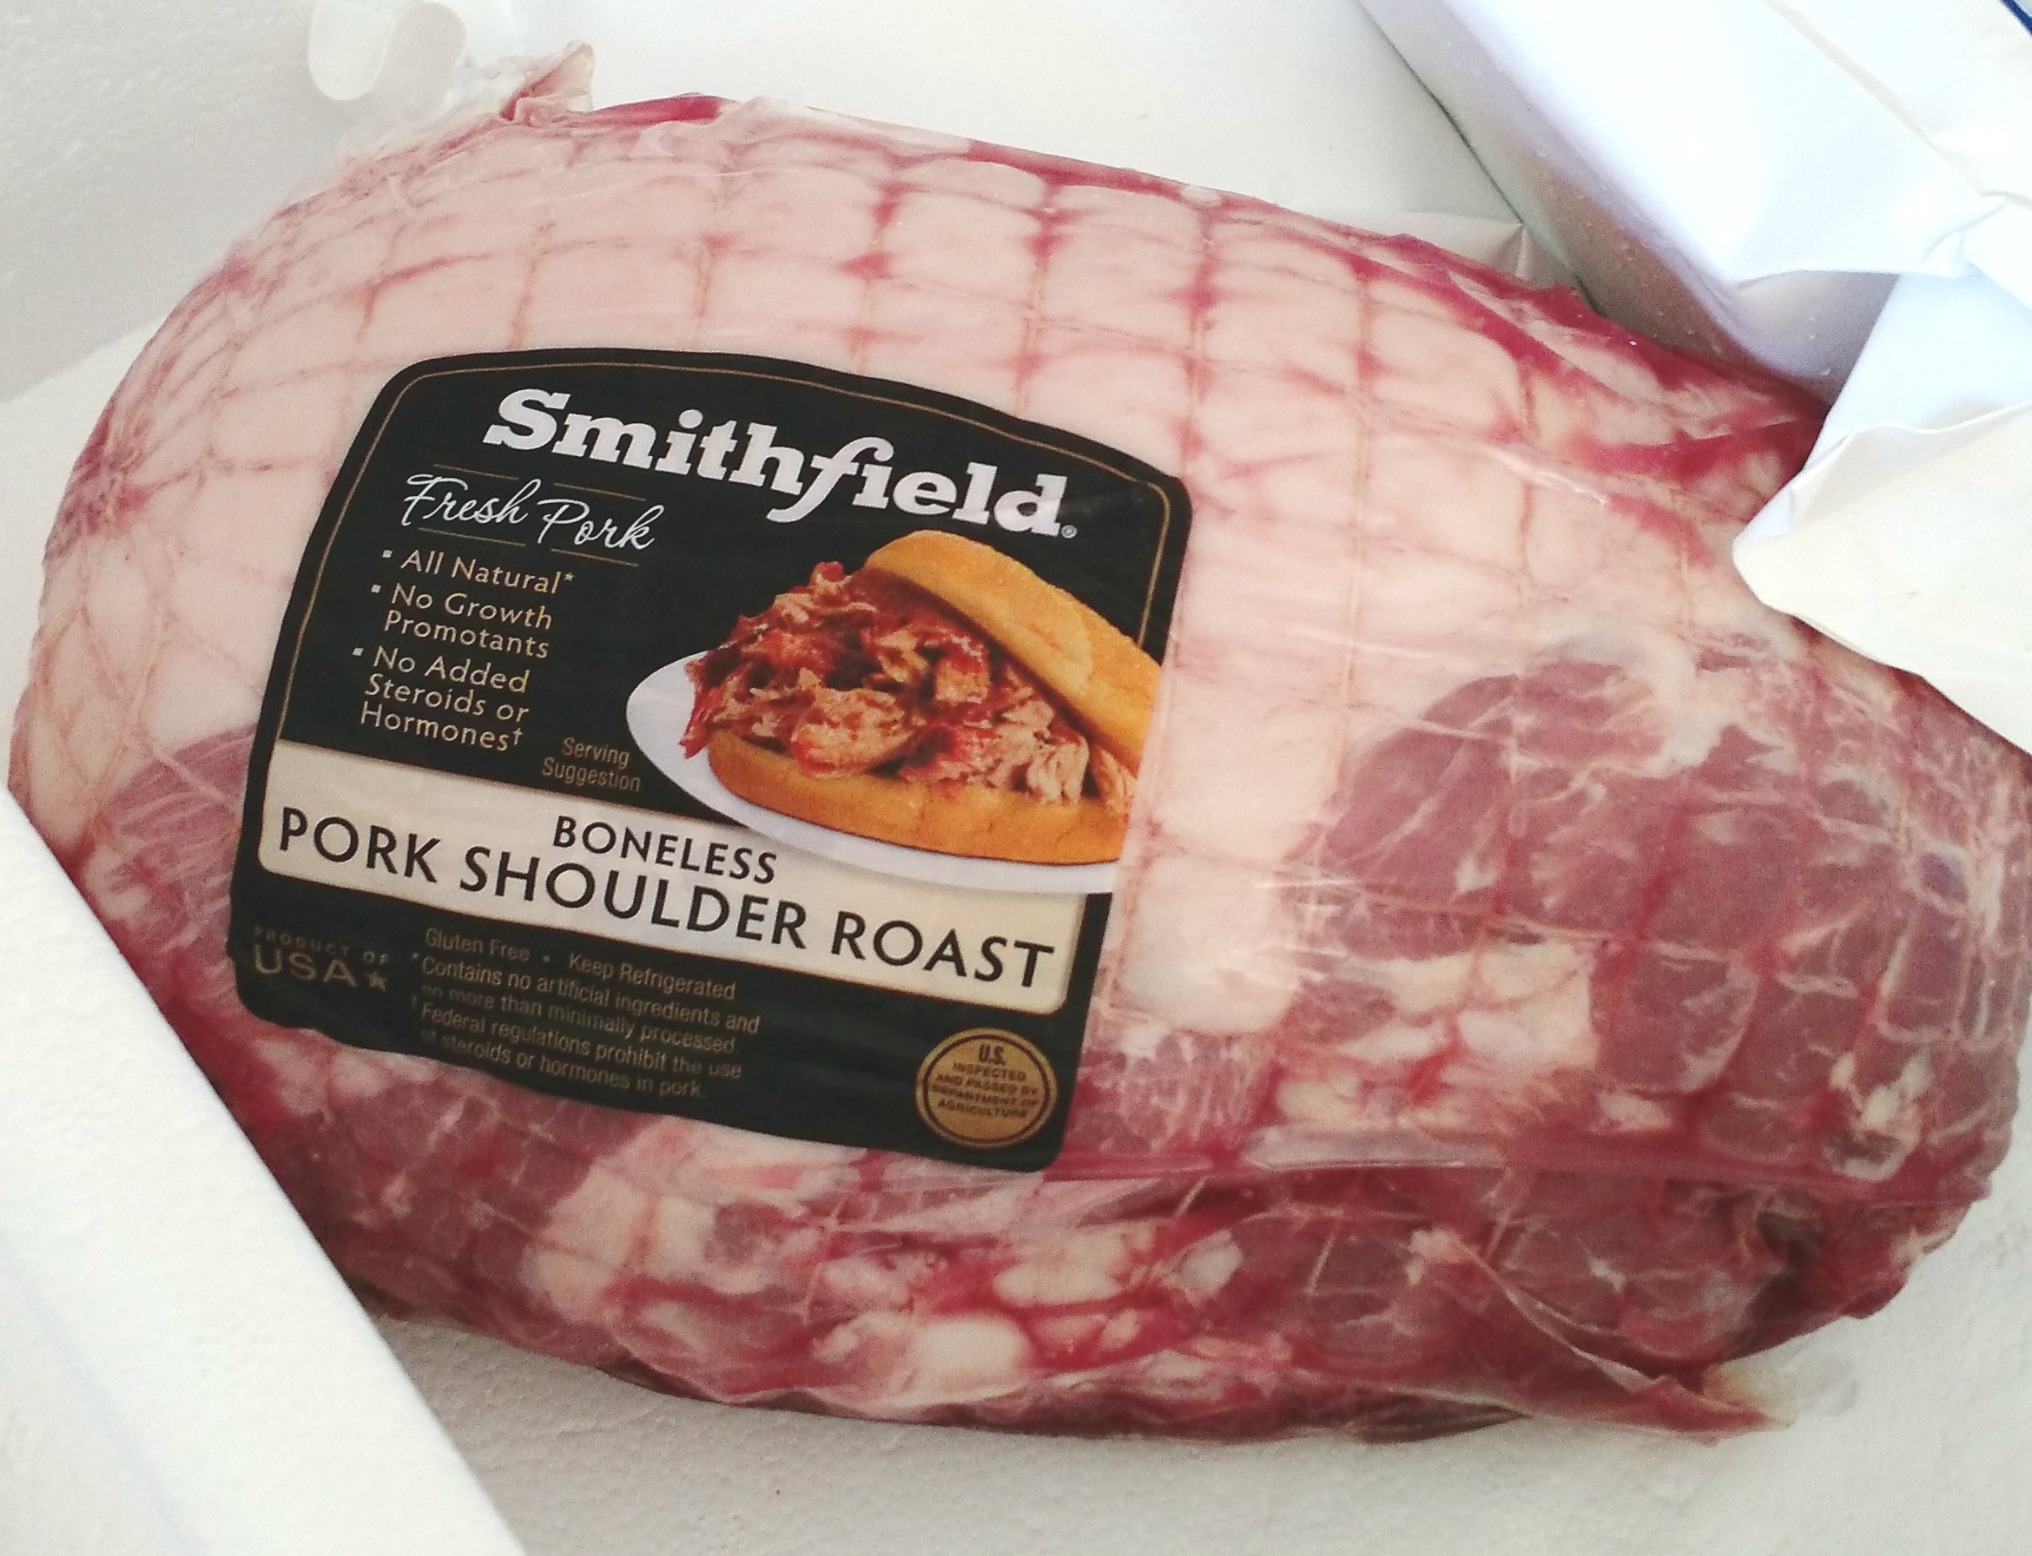 smithfield-boneless-pork-shoulder-roast